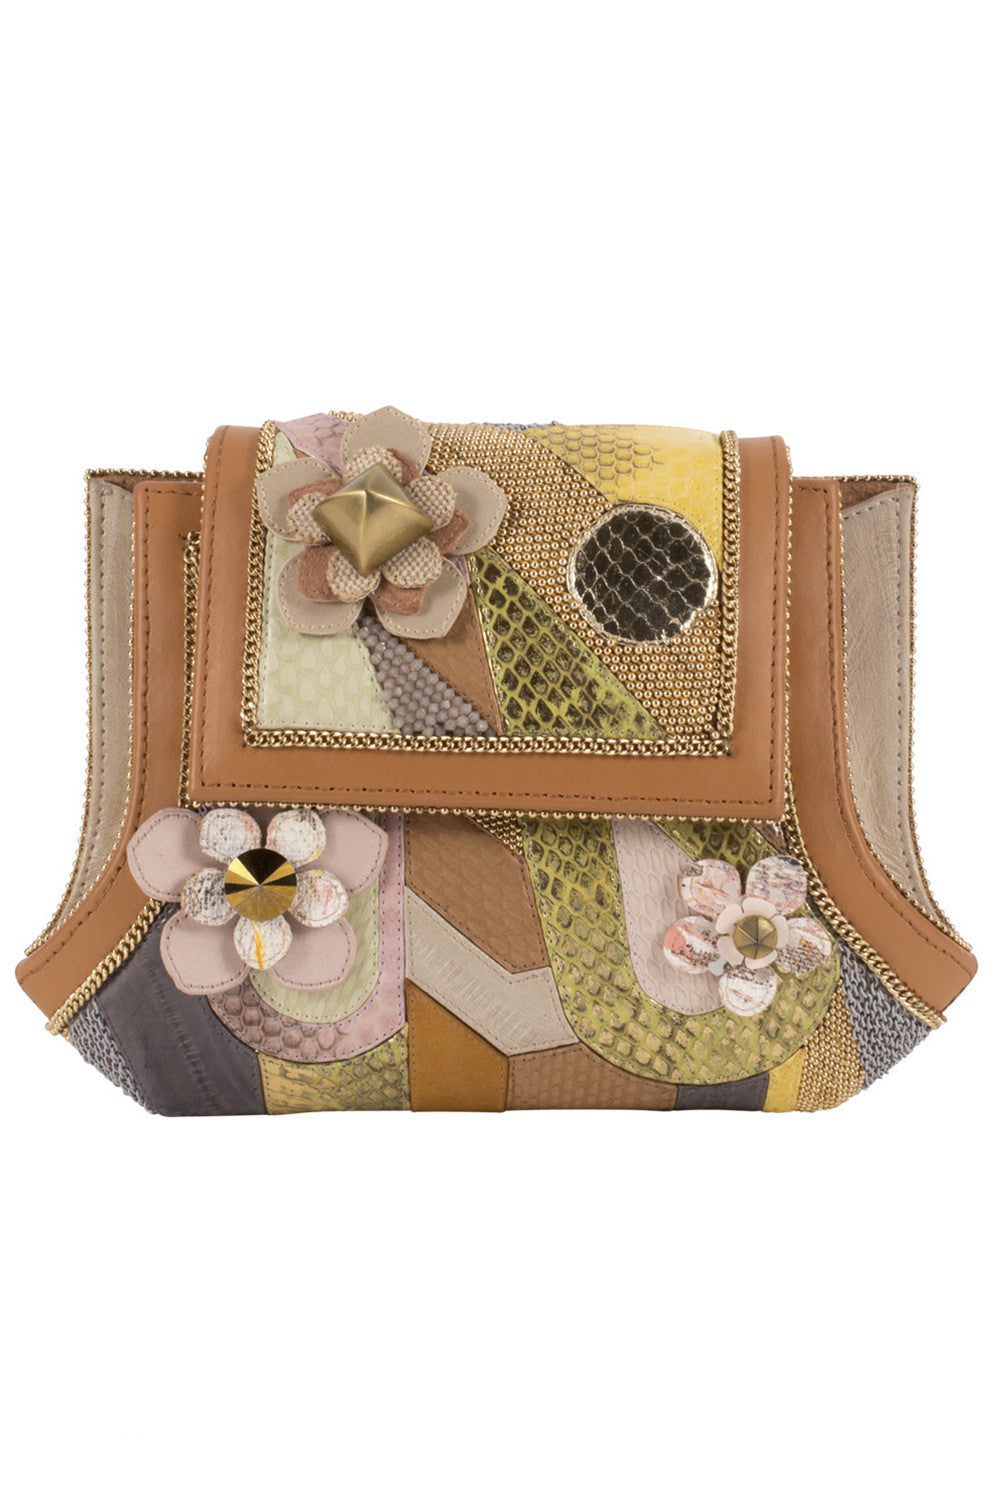 MANDALAY Clutch in Multi Tan